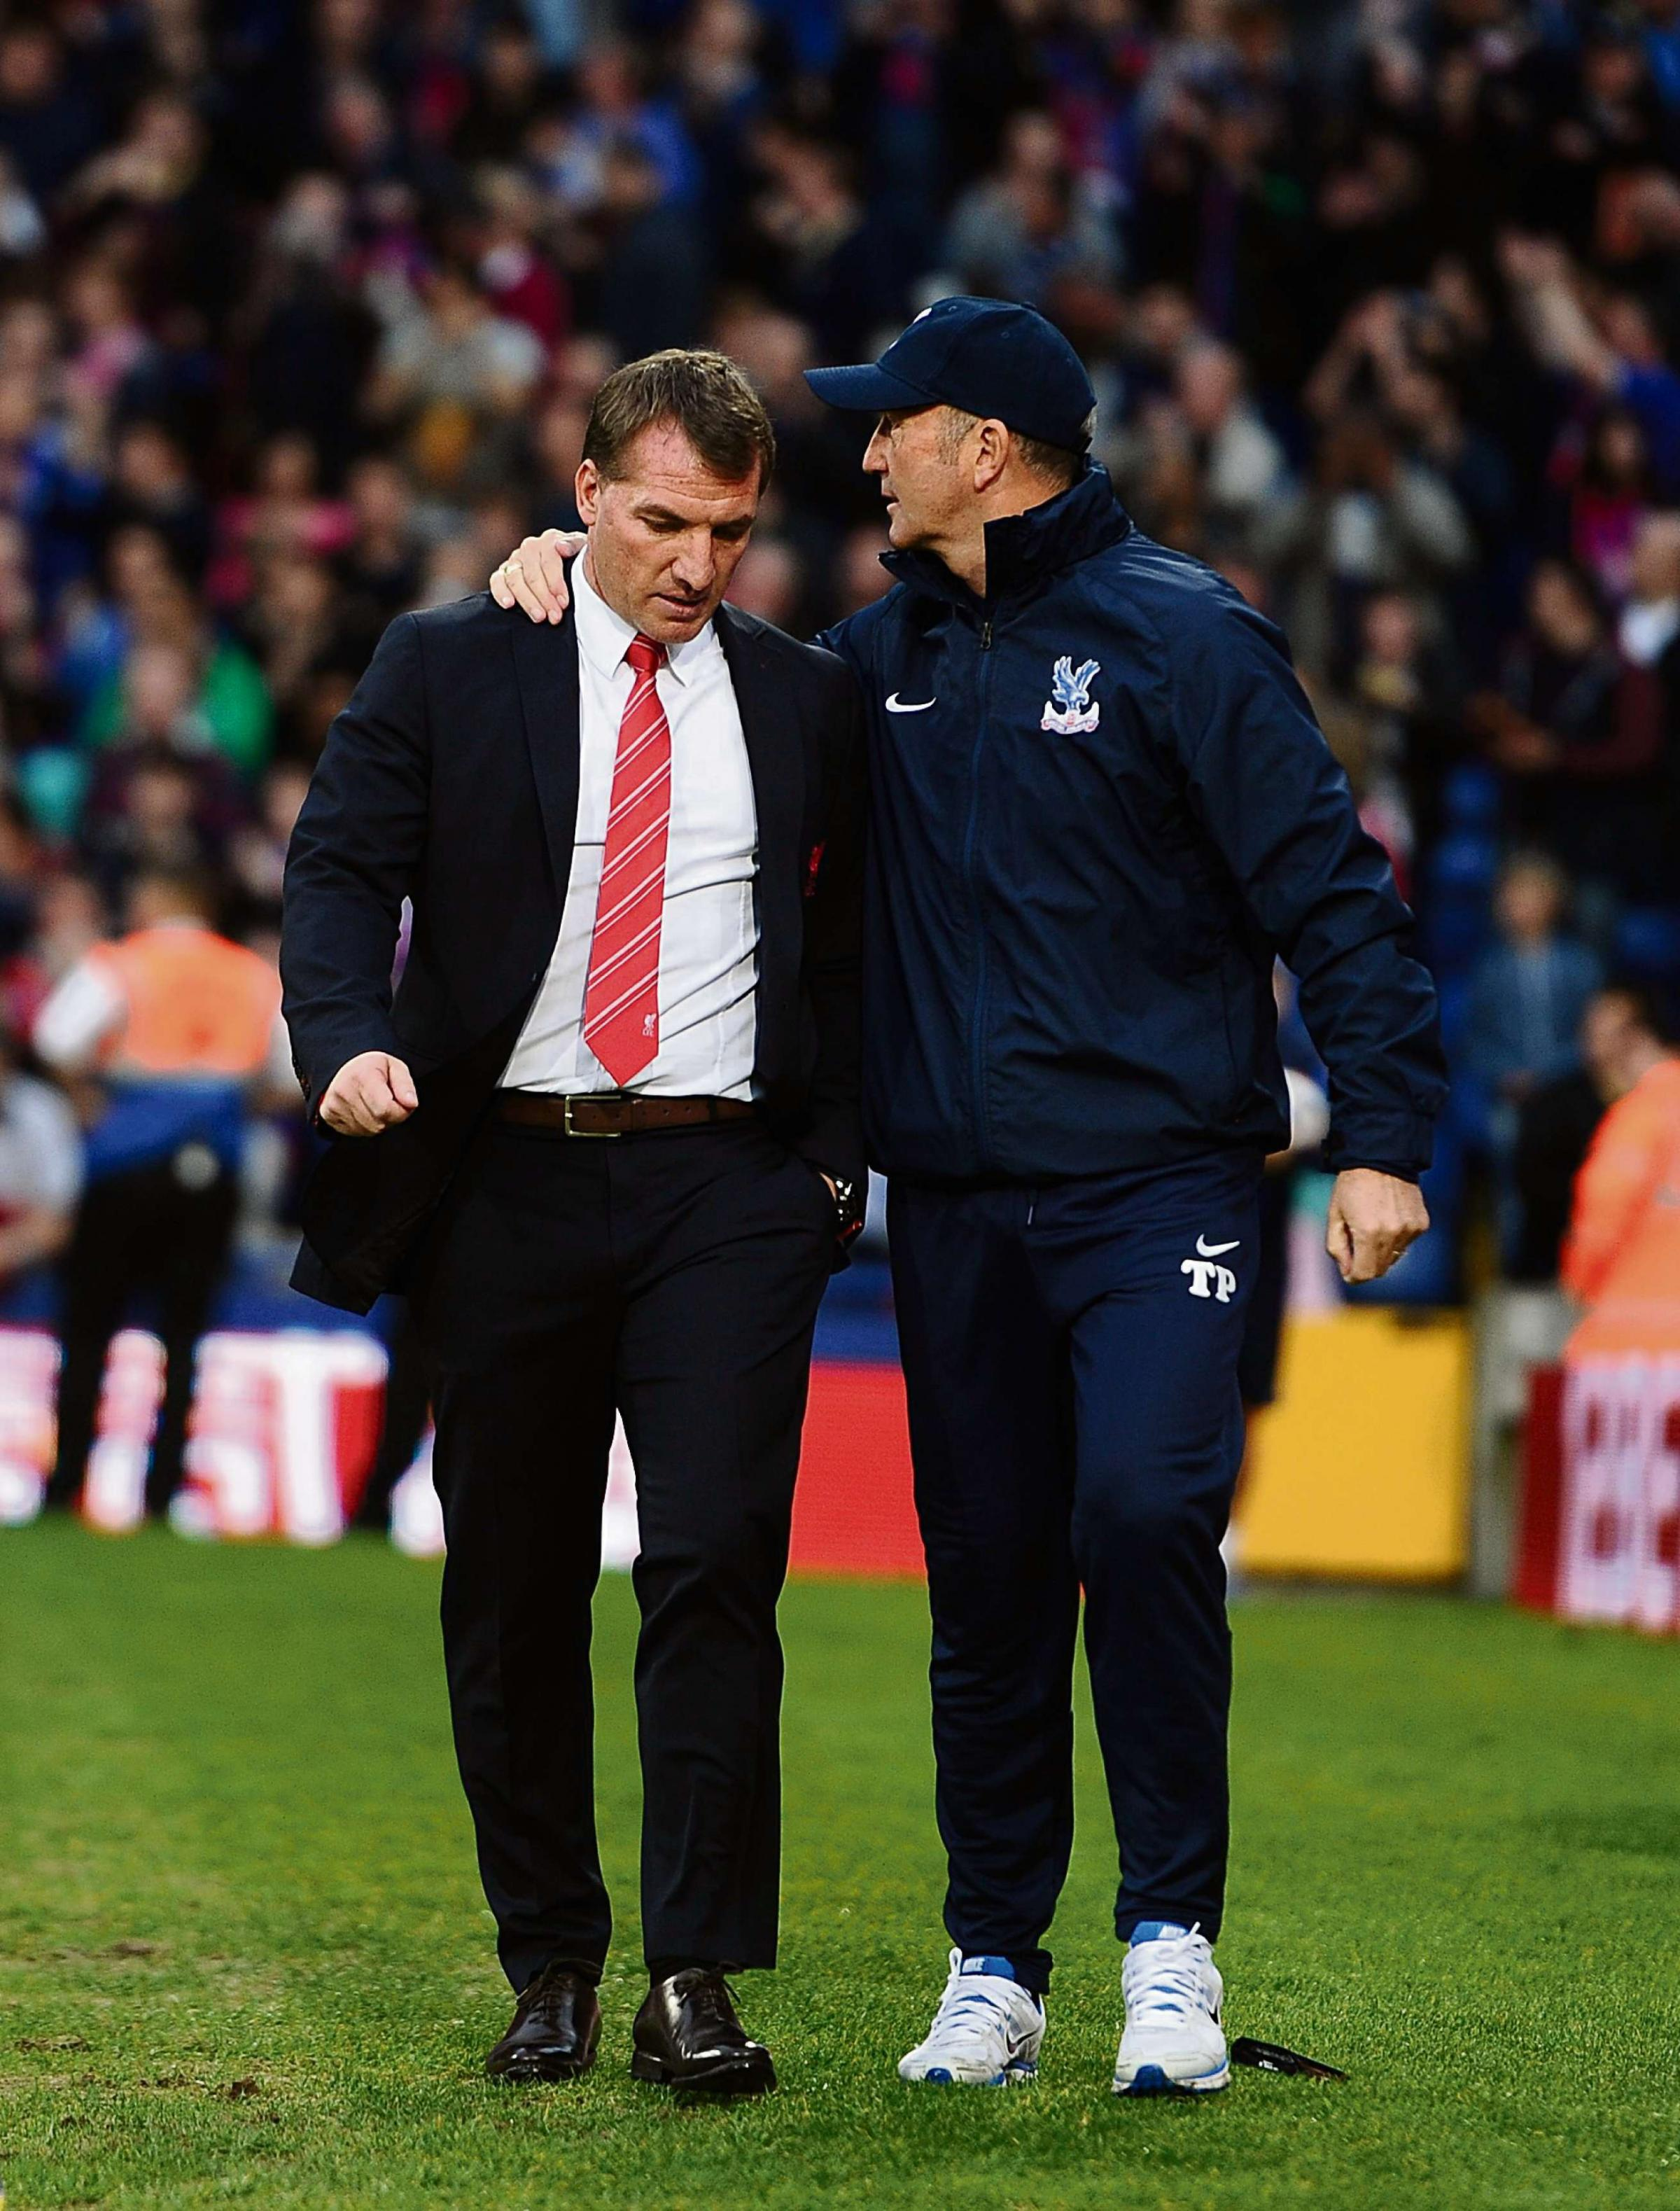 TOP BOSSES: Crystal Palace manager Tony Pulis, right, and Liverpool manager Brendan Rodgers